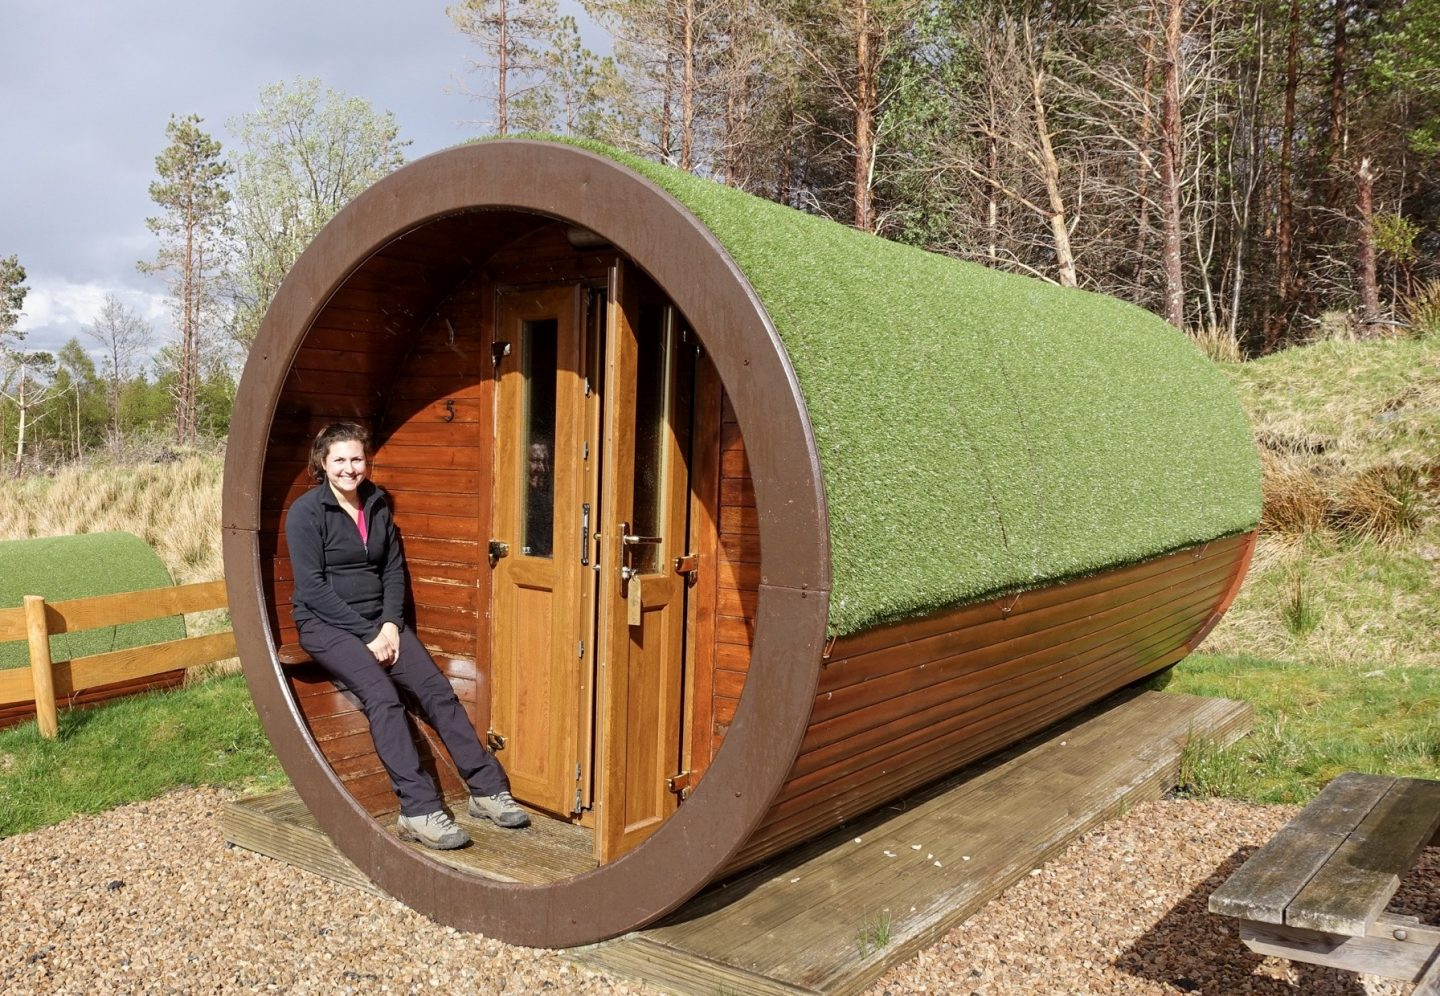 Hobbit house at Glencoe Mountain Resort when walking the west highland way. Nell is sat in the entrance to a wooden tube accommodation covered in green astroturf.